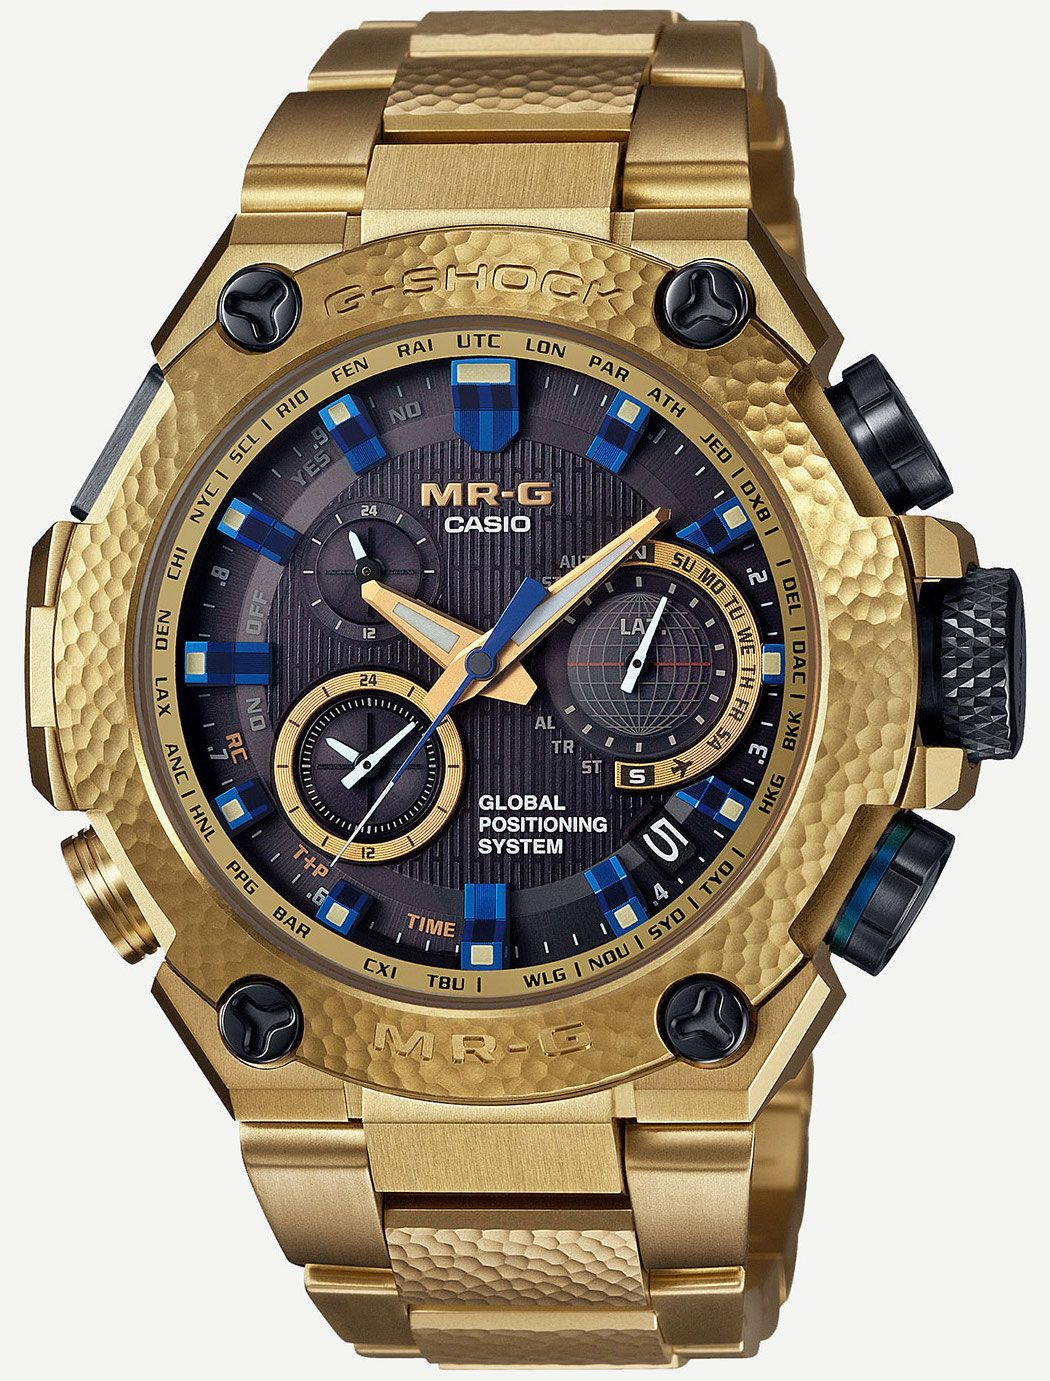 Casio G-Shock Gold Hammer Tone MRGG1000HG-9A Watch – by David Bredan – One  of the most outrageous c3cca57fc55a